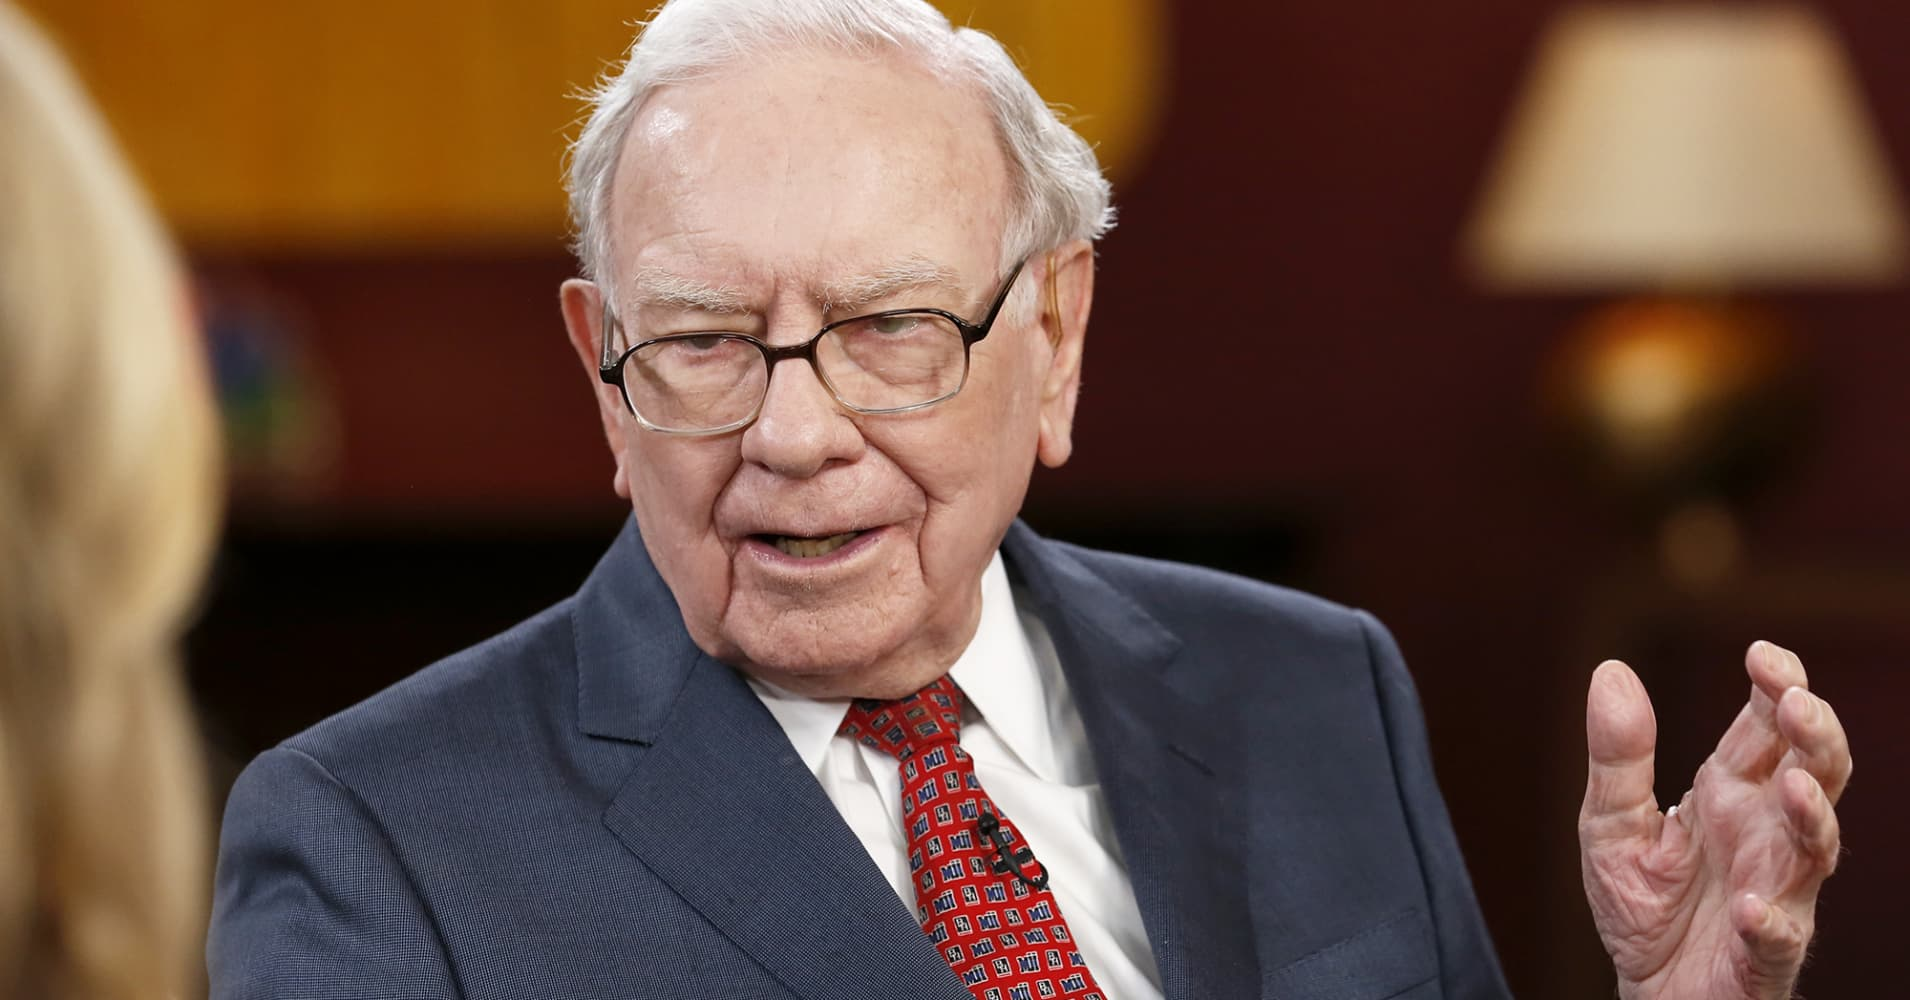 cnbc.com - Buffett's Berkshire Hathaway loosens policy on stock buybacks